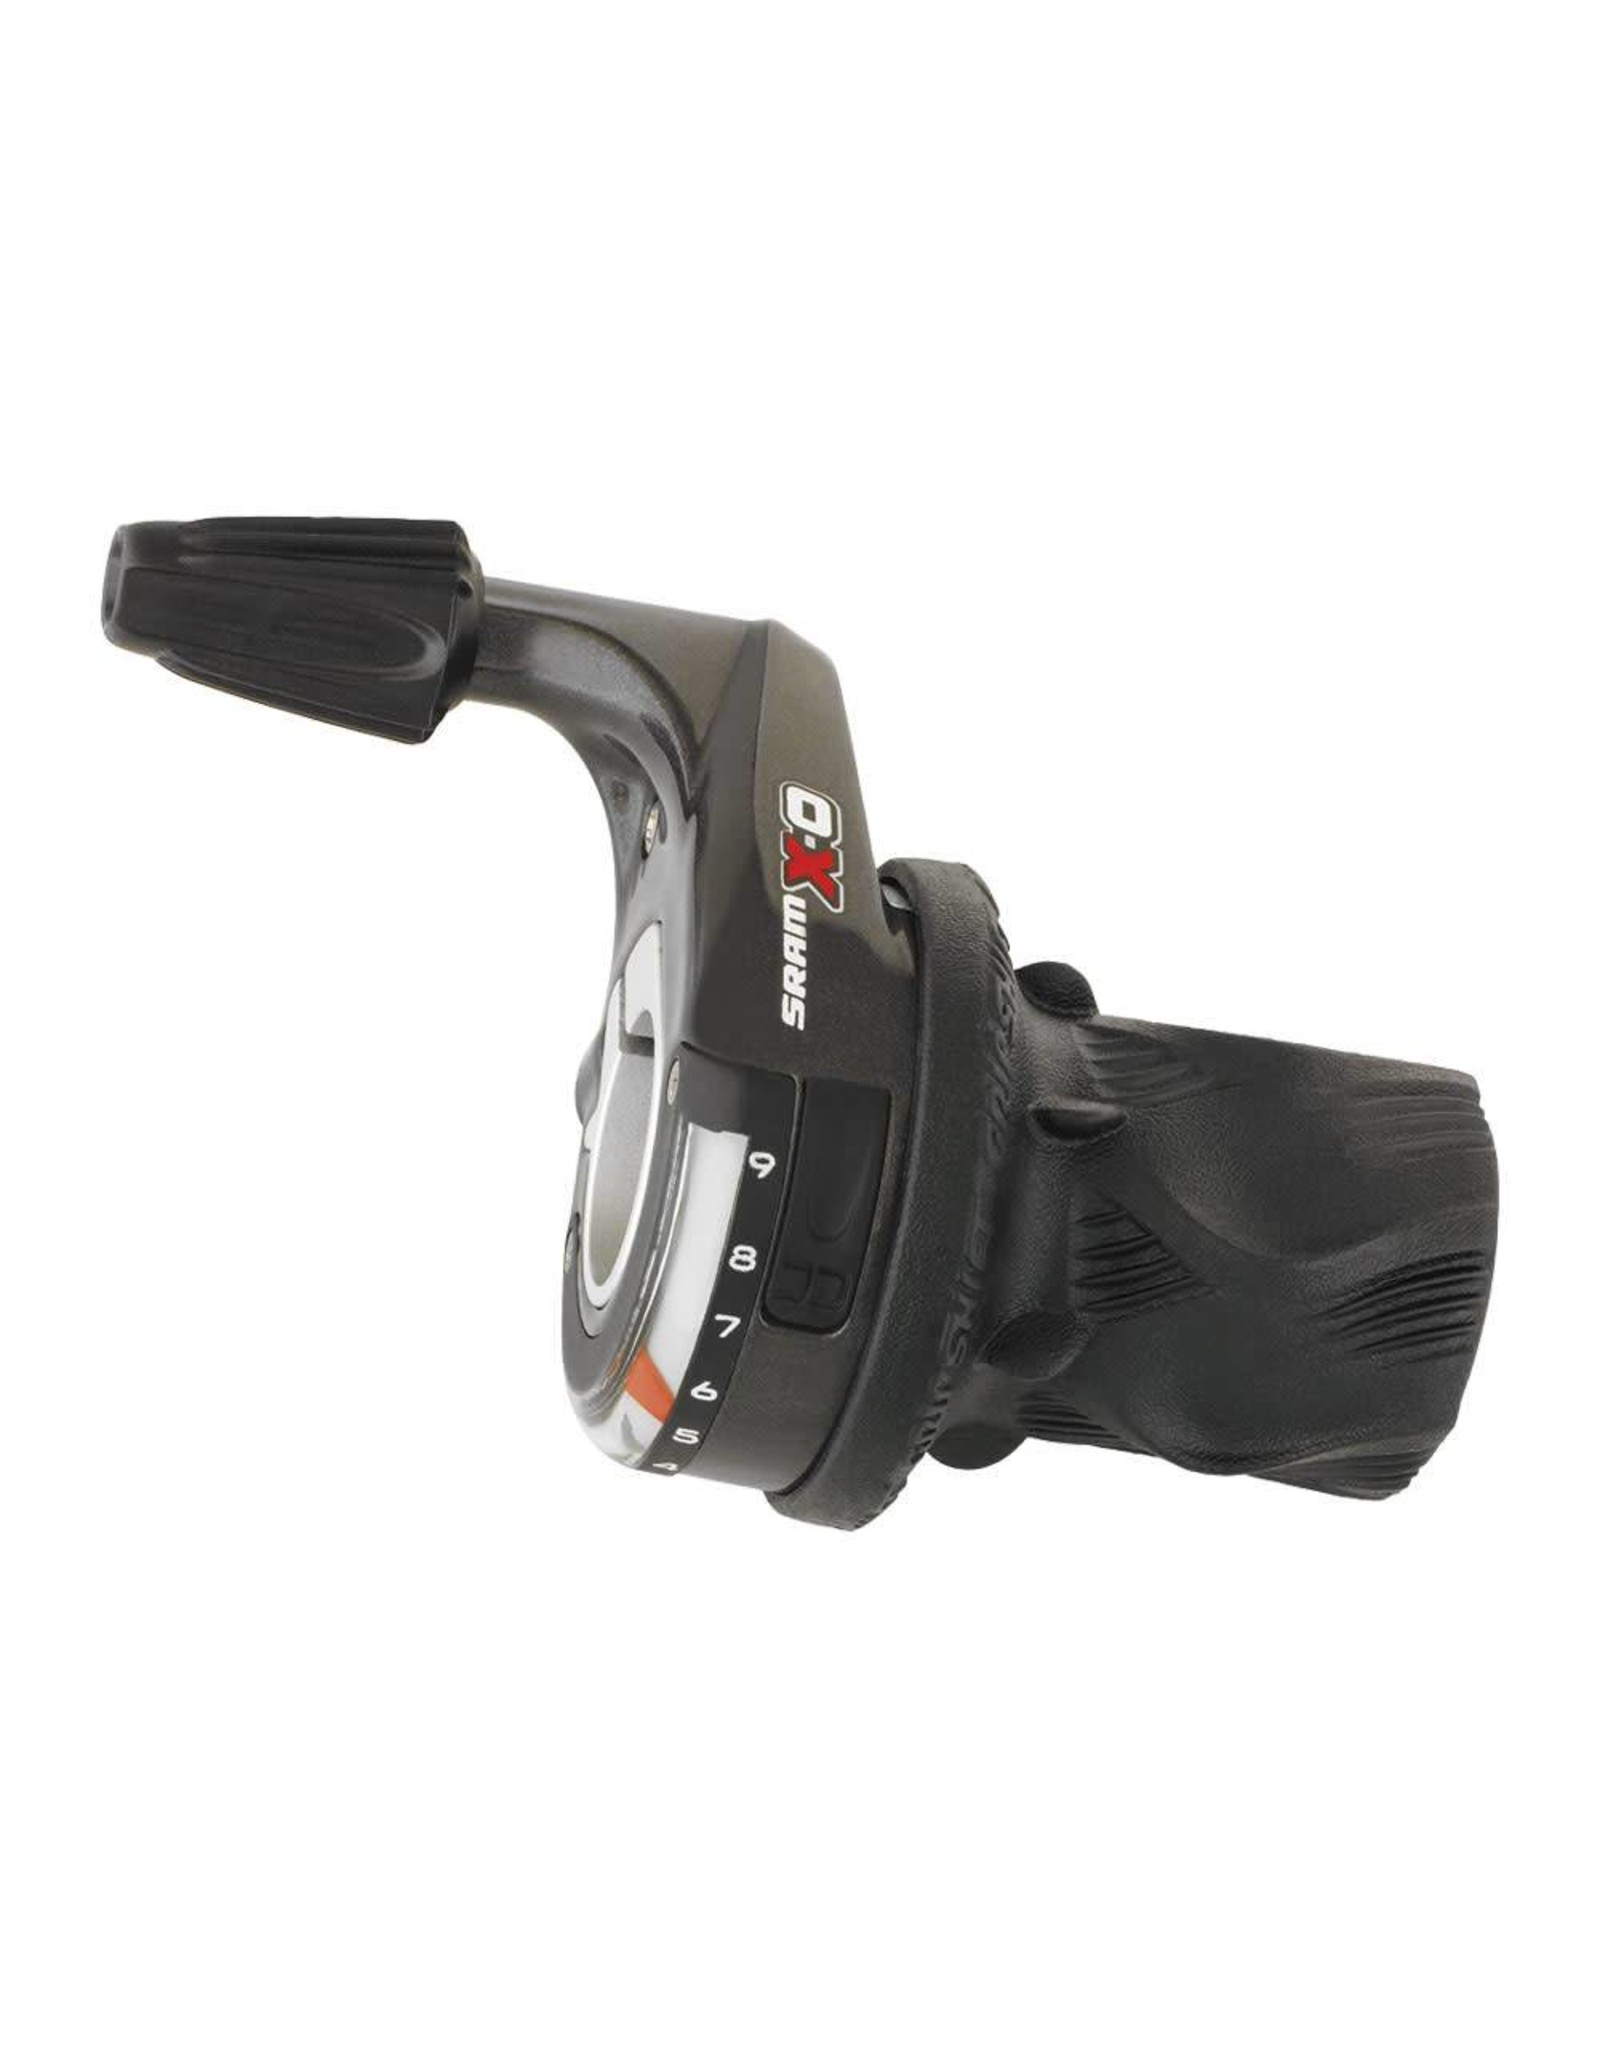 SRAM Sram SL X0 Twister Gripshift 9-Speed